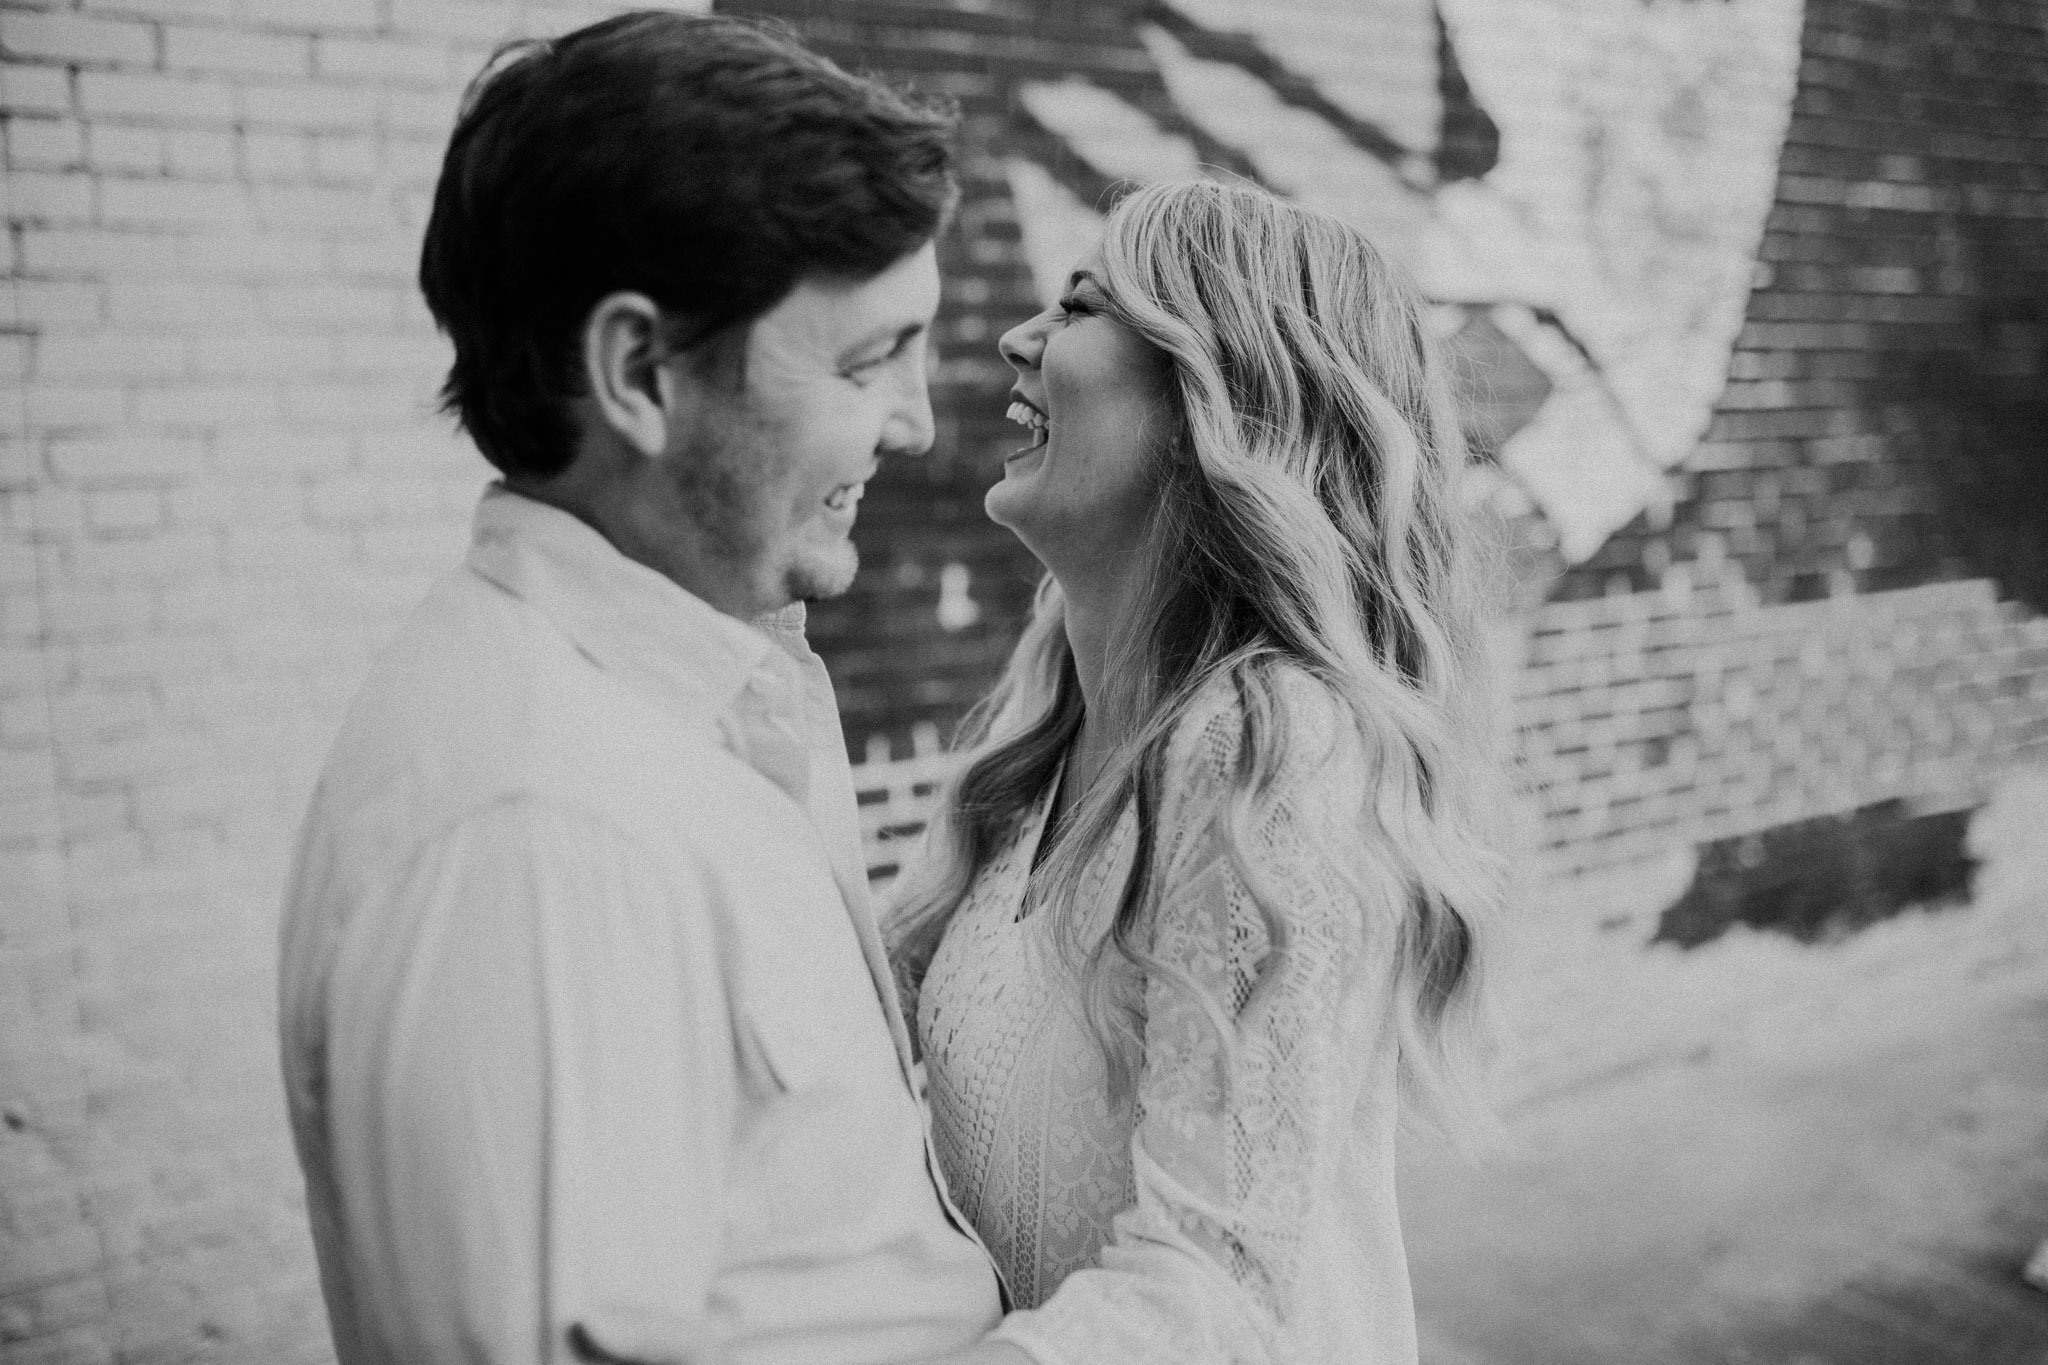 Angelle&Charlie_DFW_Wedding_Photography_01.jpg